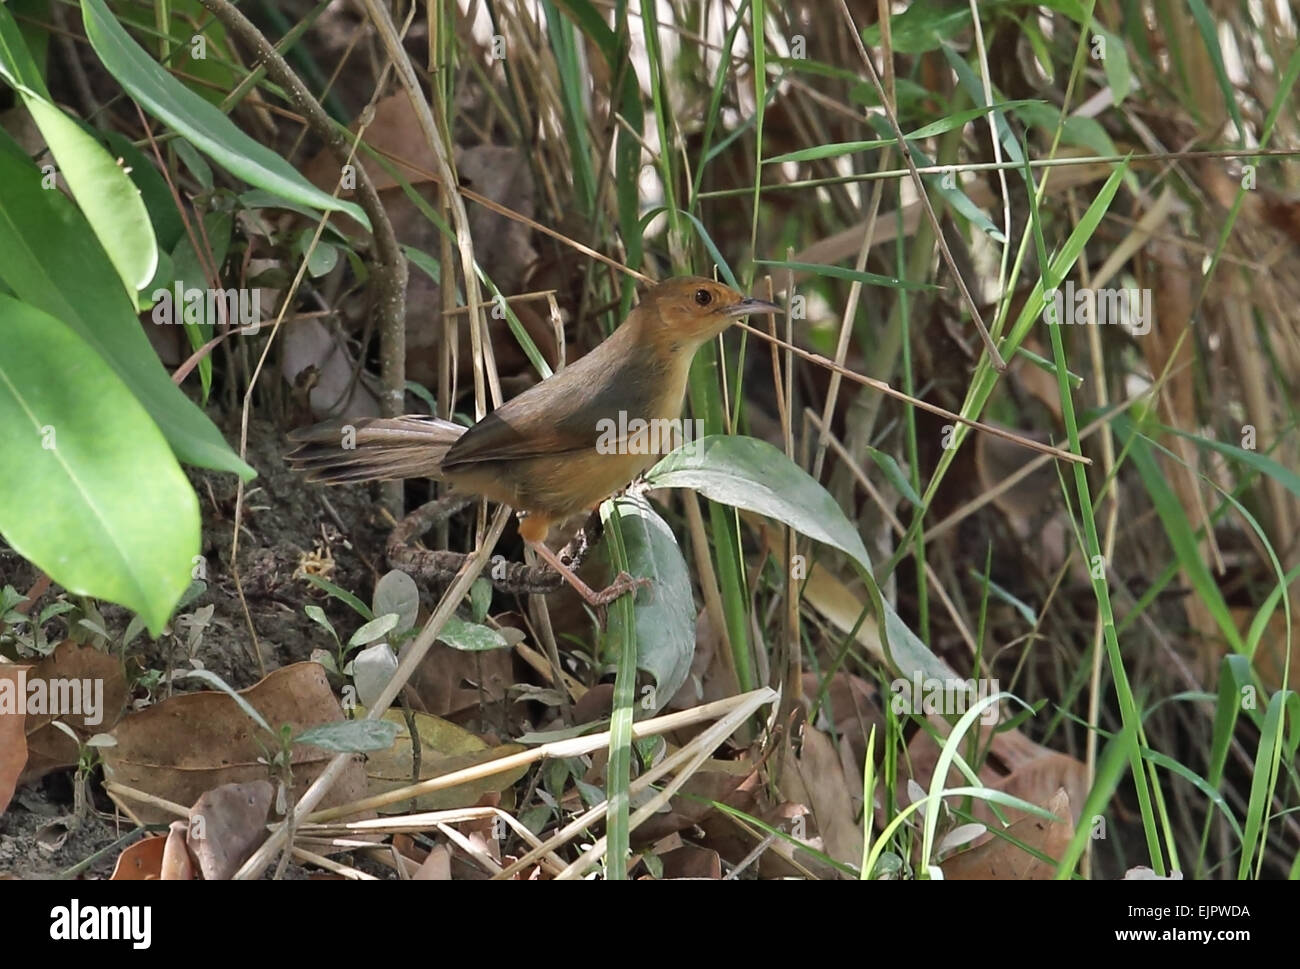 Red-faced Cisticola (Cisticola erythrops erythrops) adult, perched low in bush, Mole N.P., Ghana, February - Stock Image